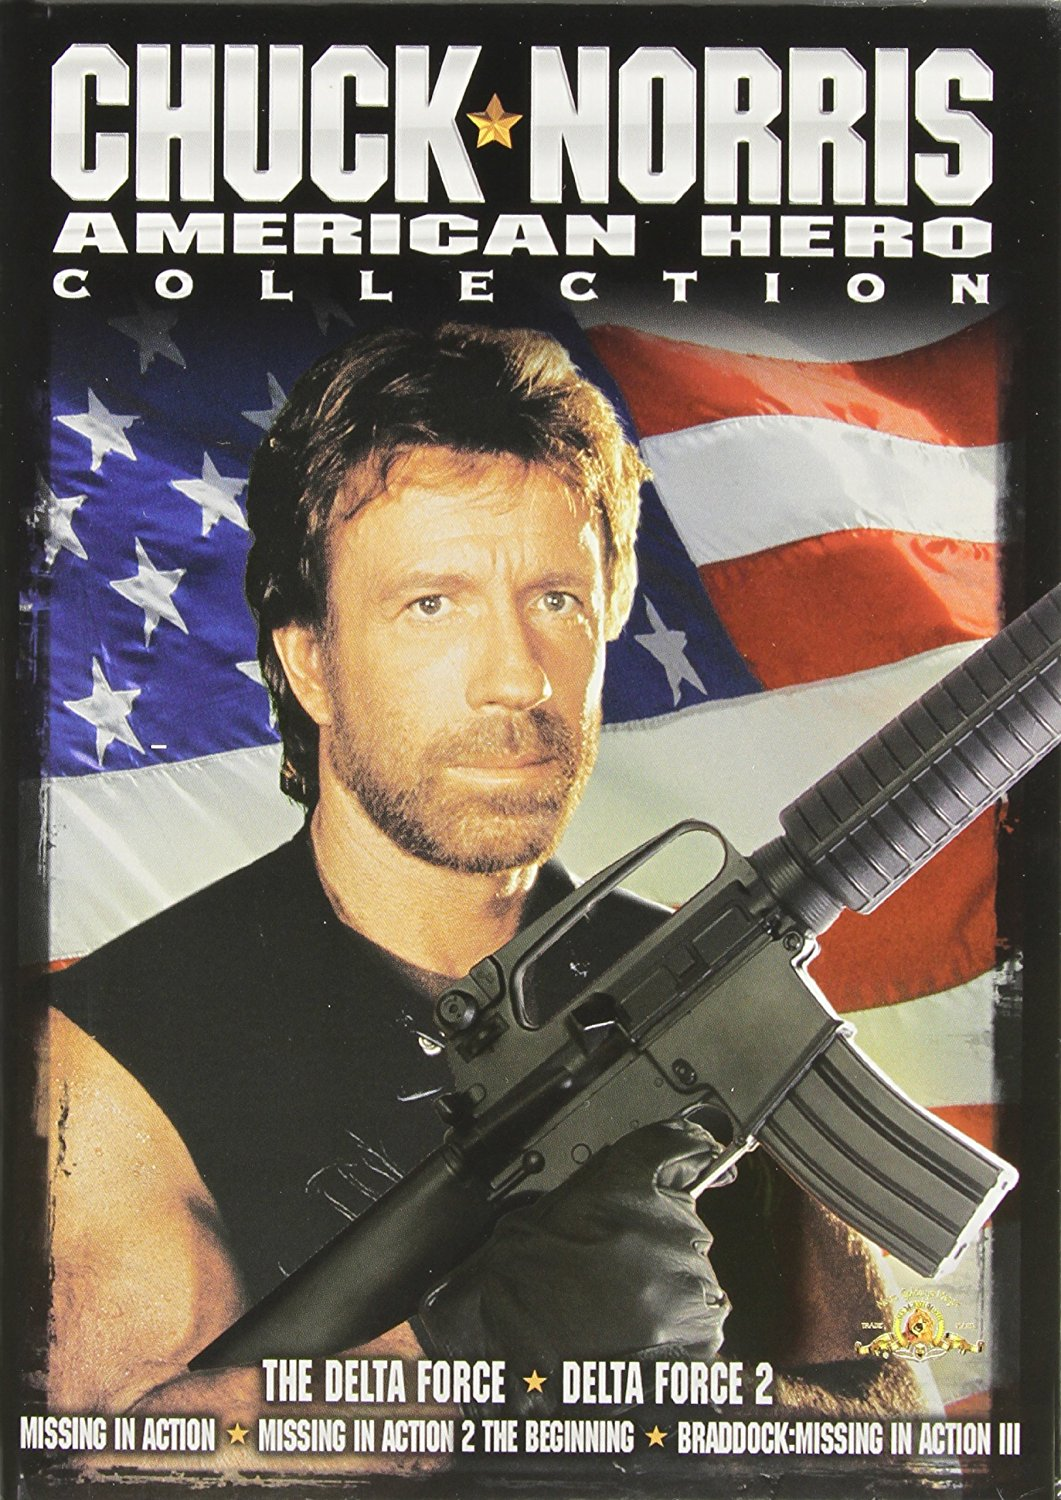 Disclaimer: Norris not actually an American hero